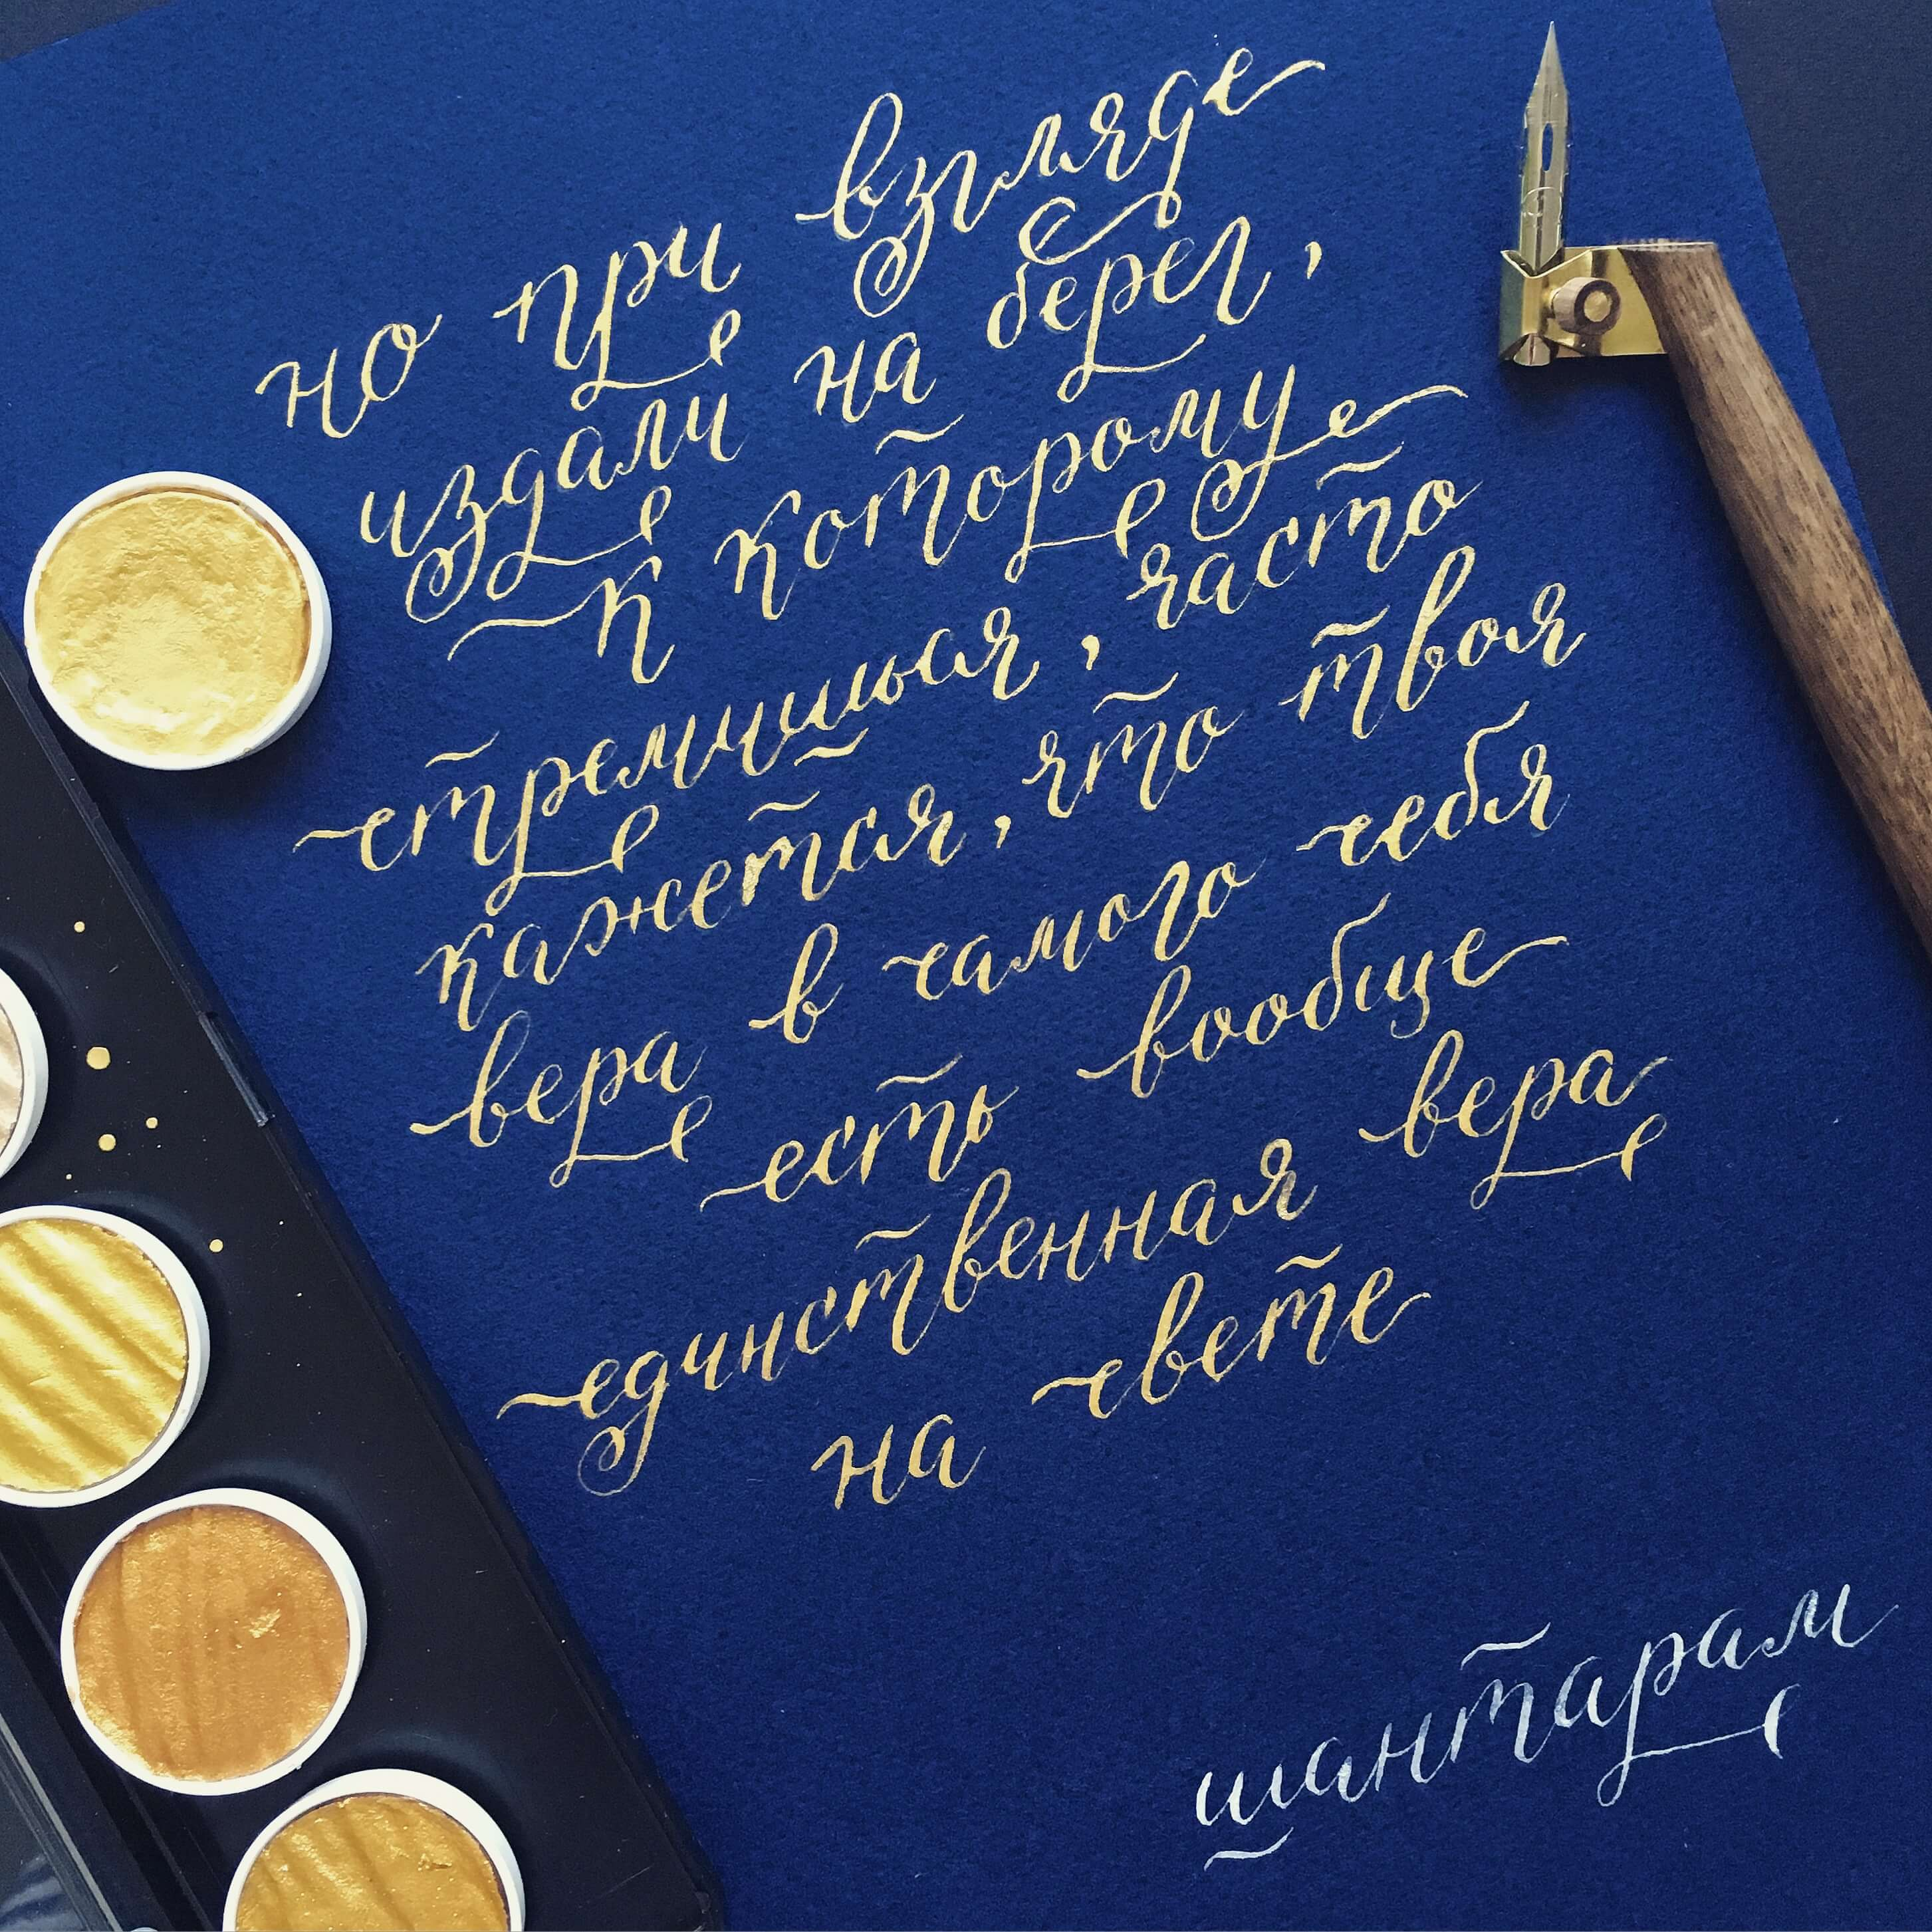 A Quote From The Book Shantaram Mountain Shadow In Modern Calligraphy Style